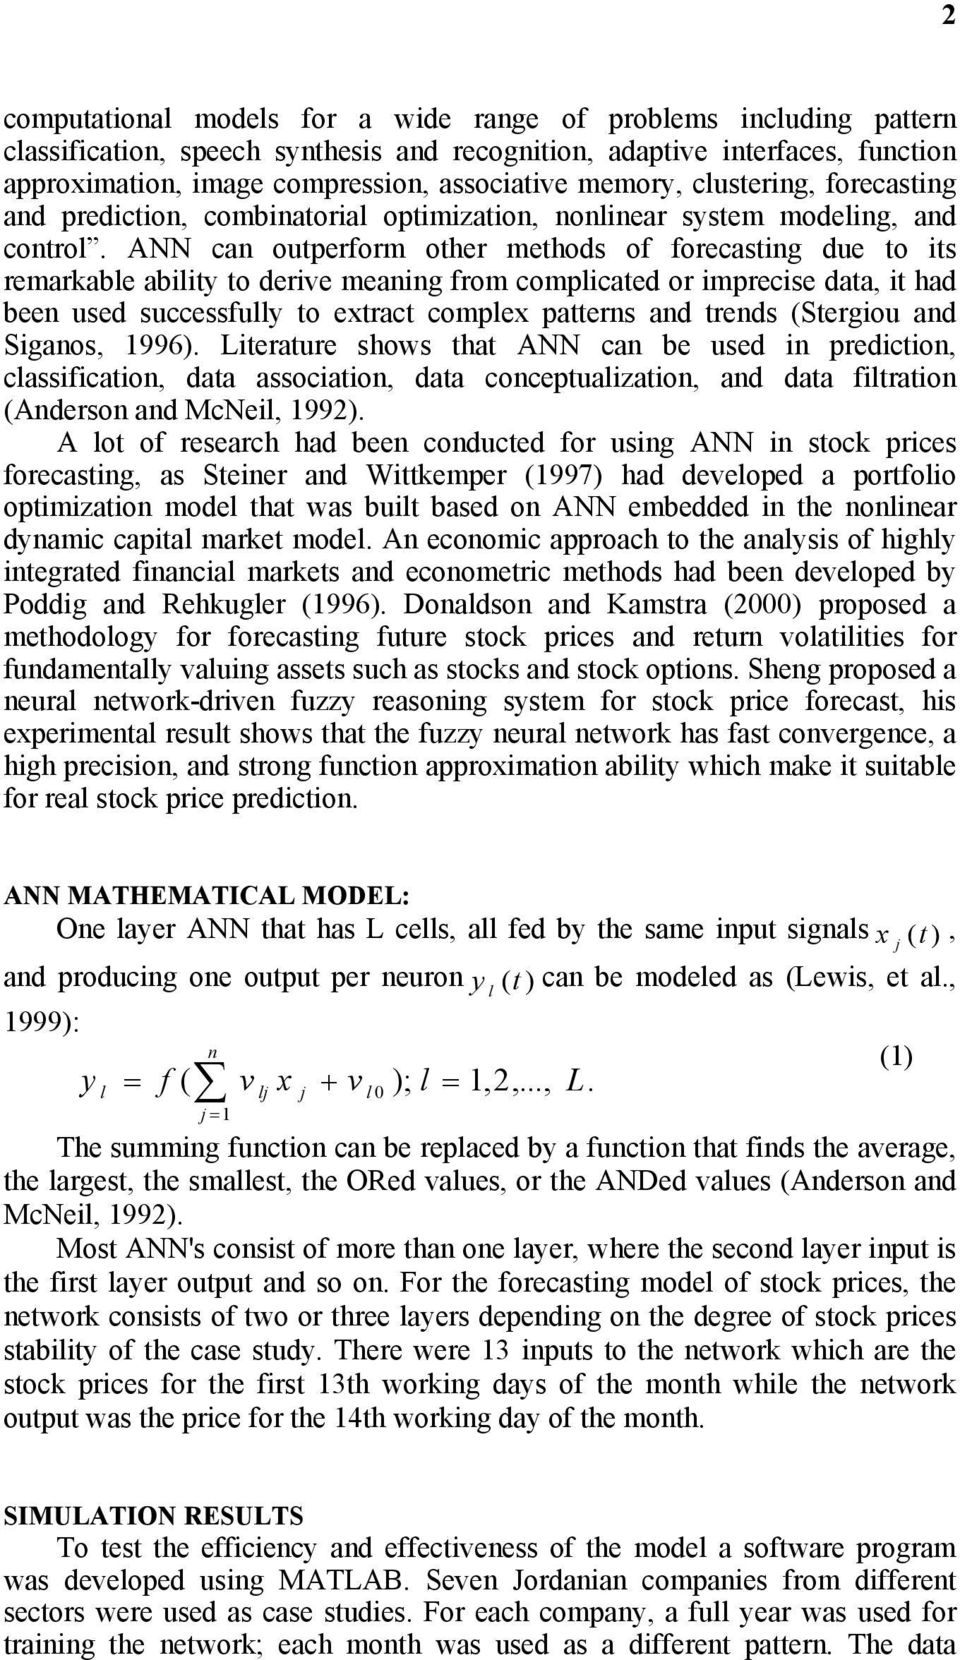 ANN can outperform other methods of forecasting due to its remarkable ability to derive meaning from complicated or imprecise data, it had been used successfully to extract complex patterns and